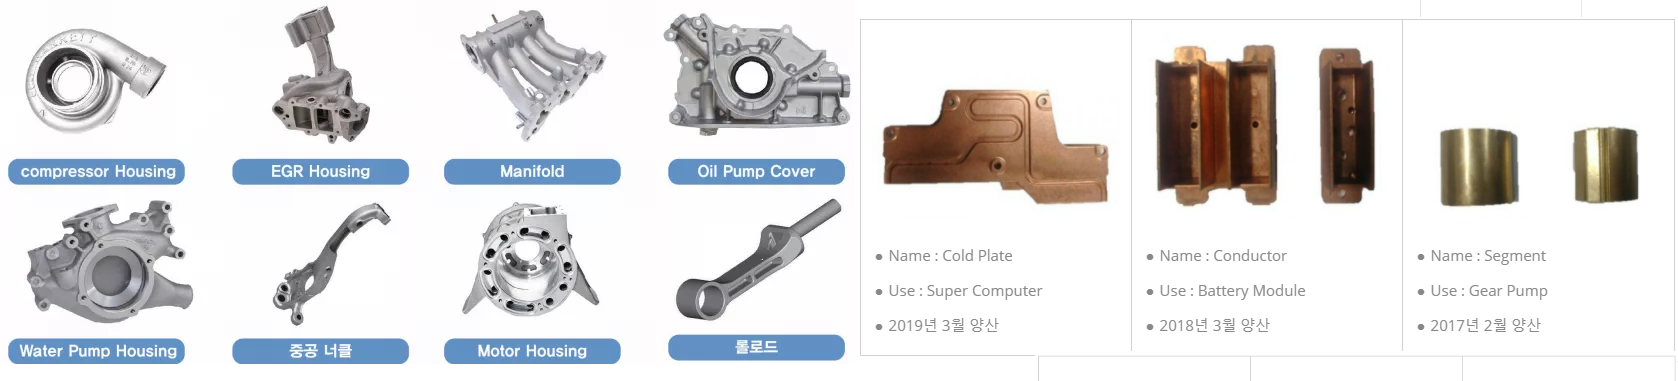 CASTMAN Main Products